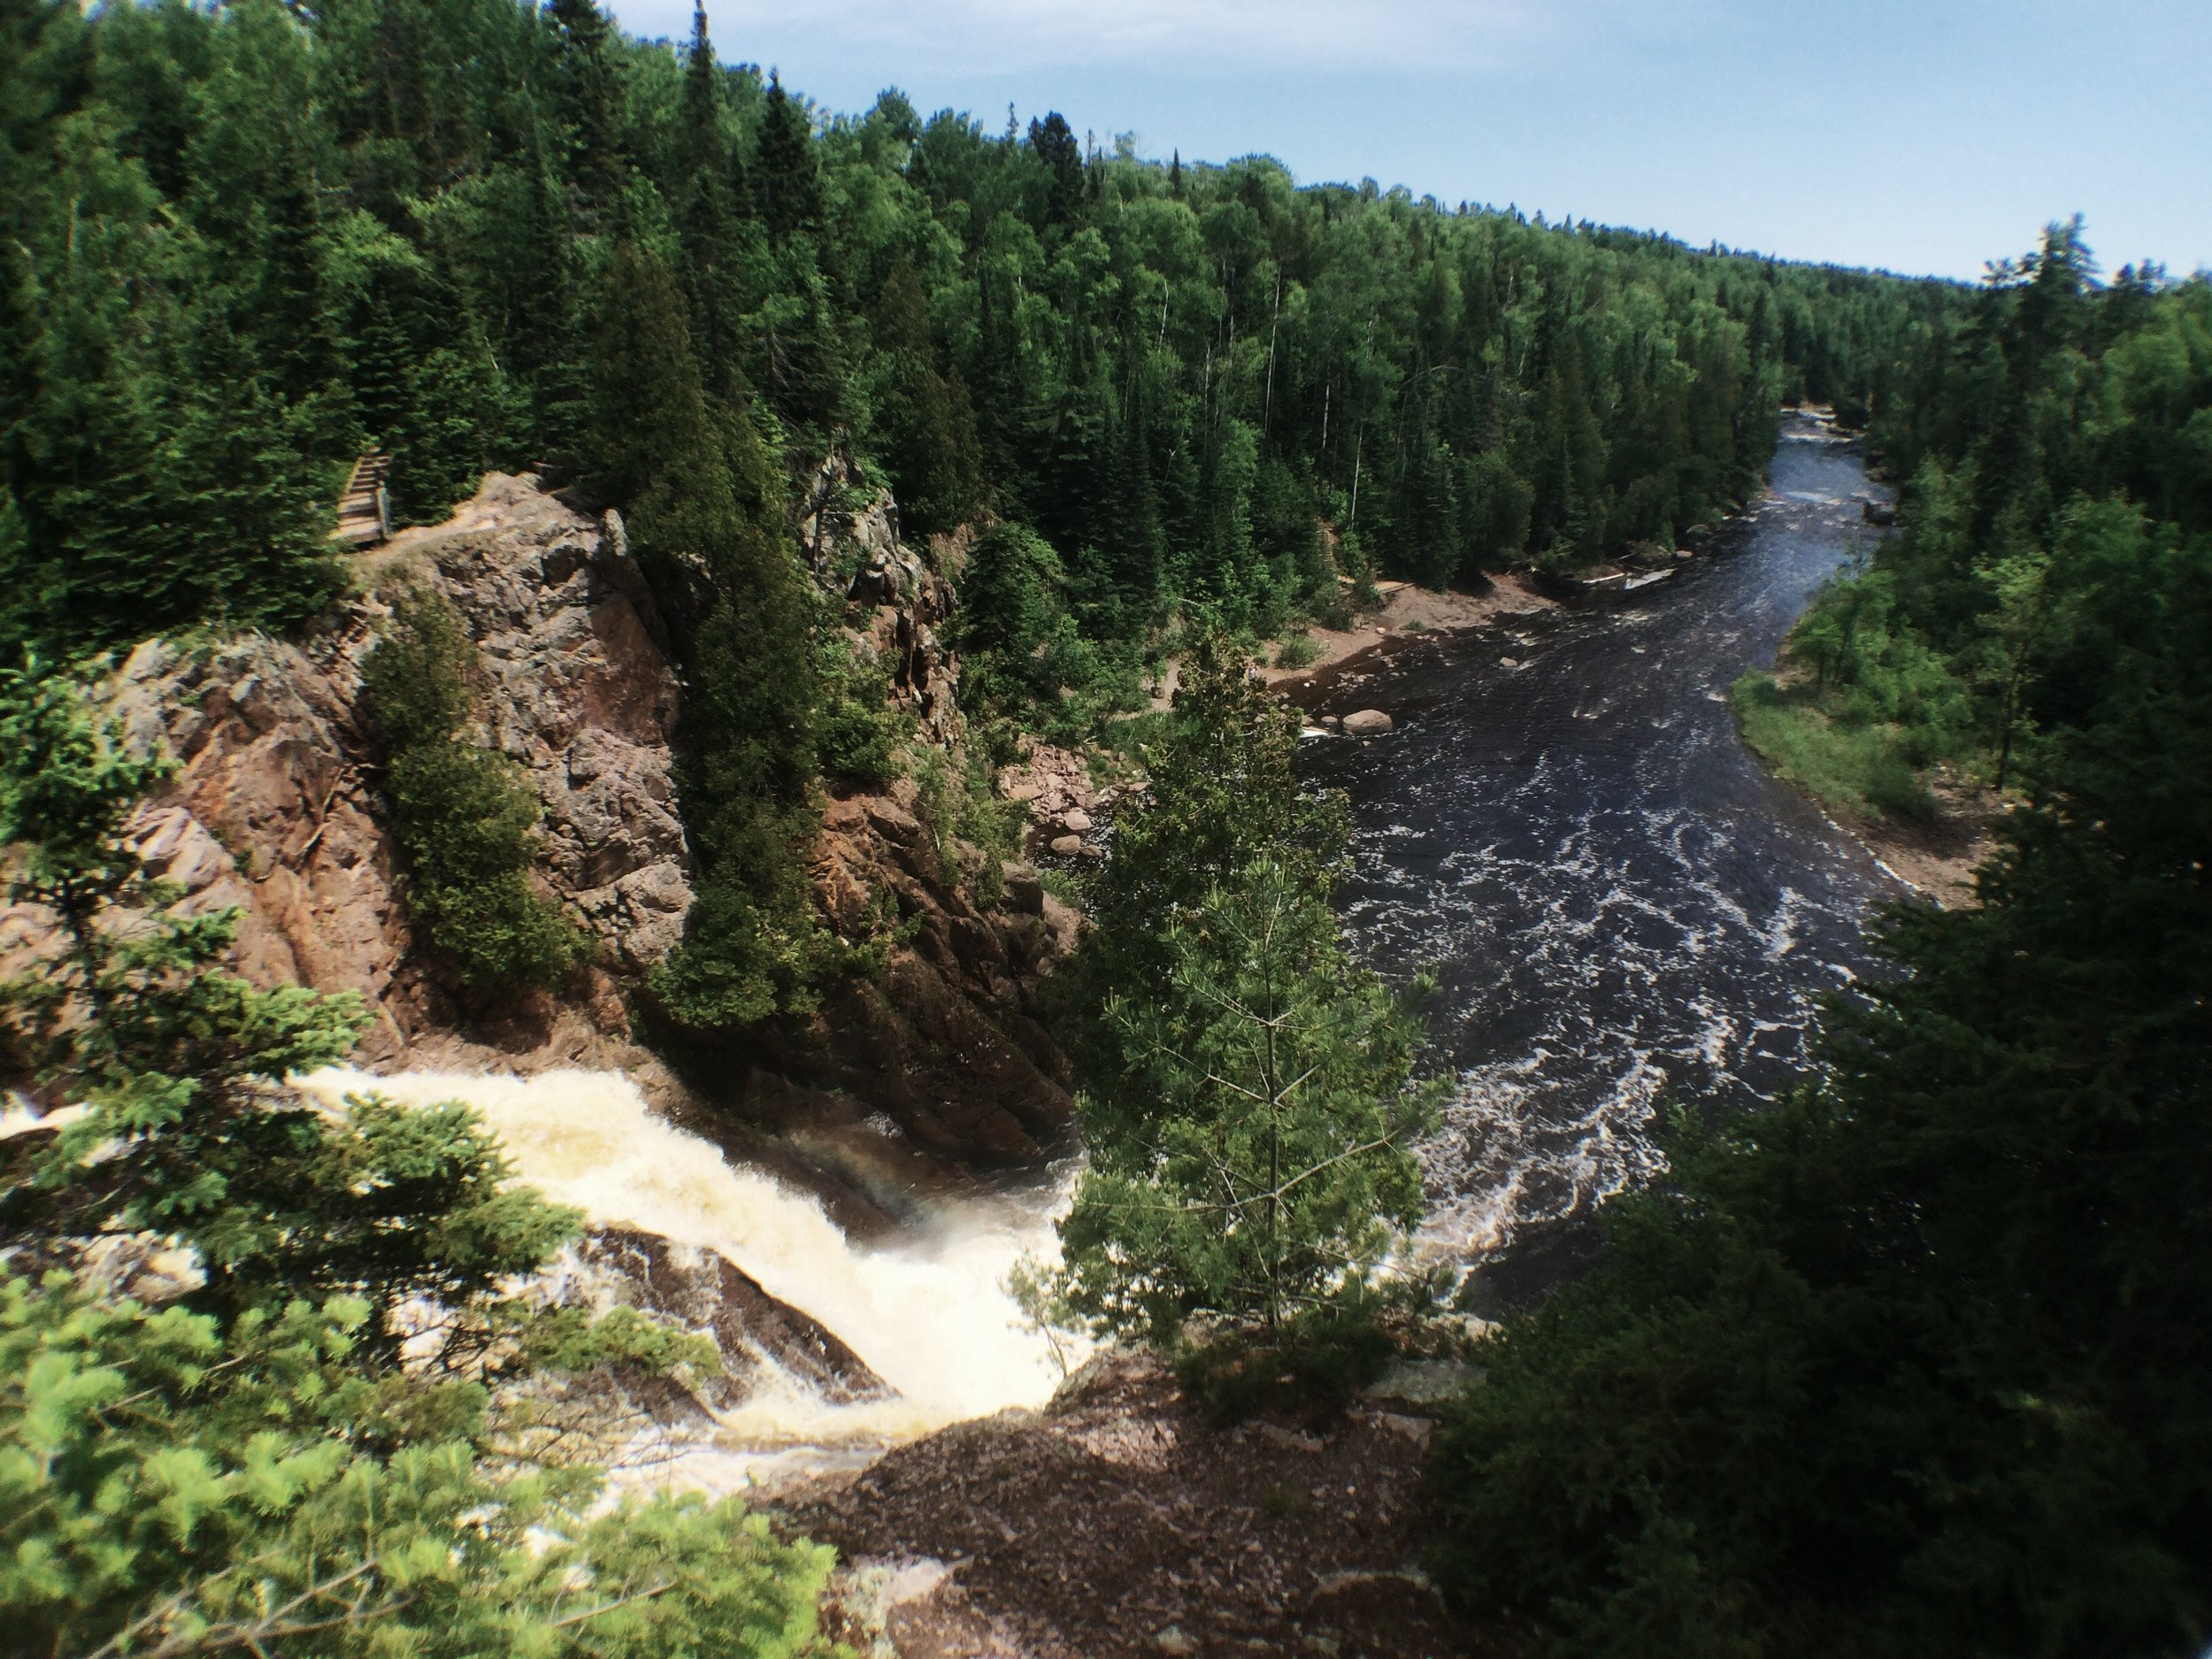 The view from the top of High Falls at Tettegouche State Park